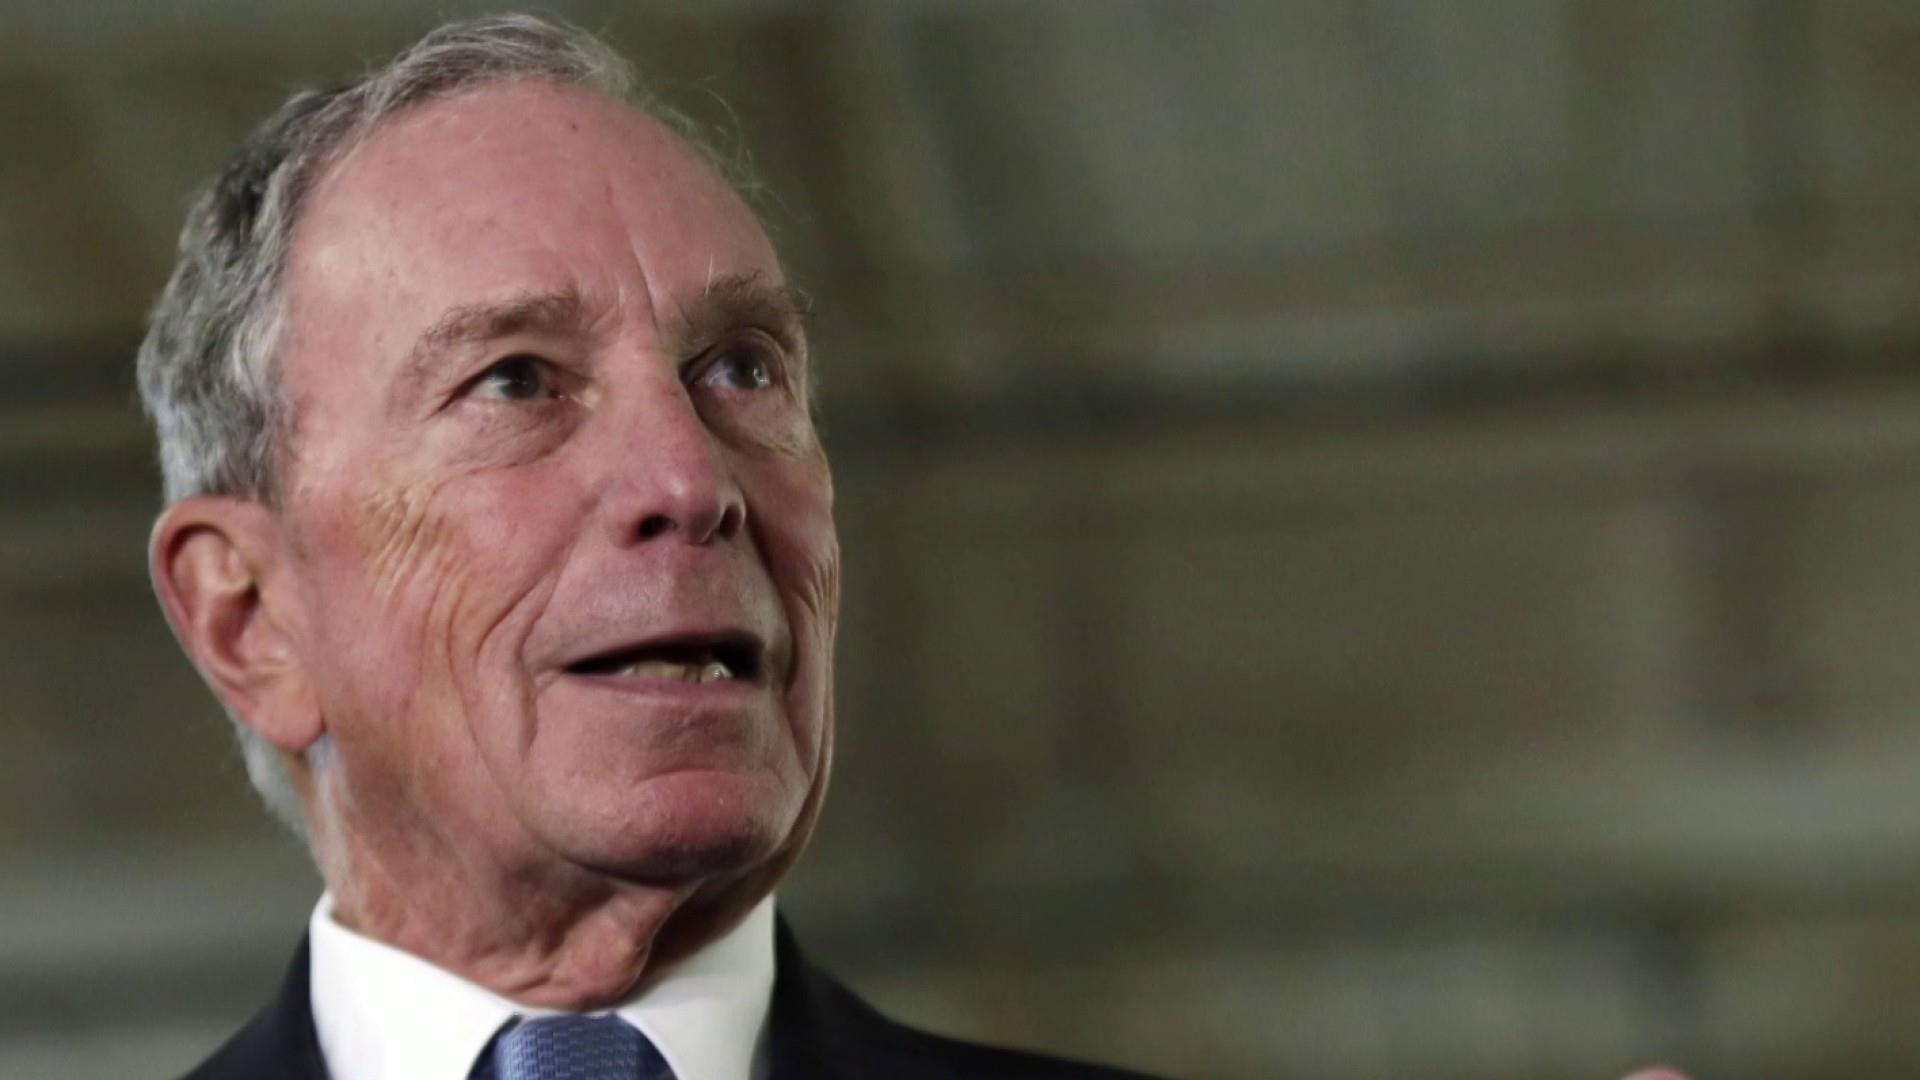 Michael Bloomberg expected to file for the Alabama 2020 presidential primary